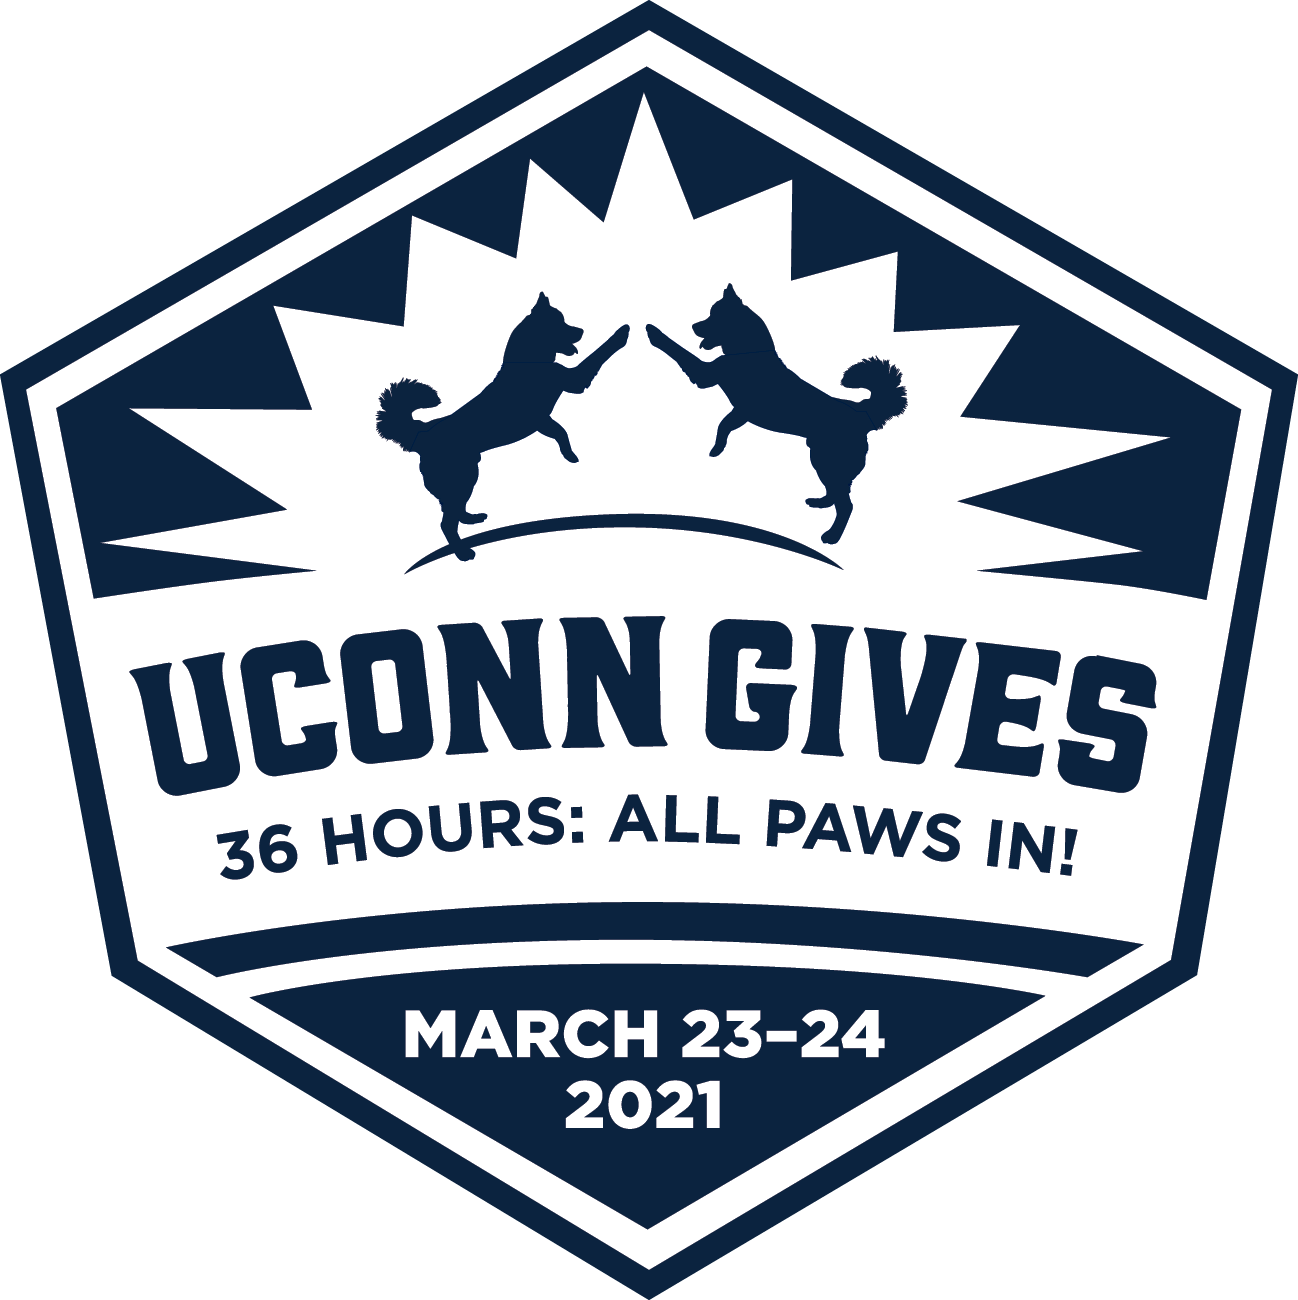 UConn Gives. 36 hours: All Paws In! March 23-24, 2021